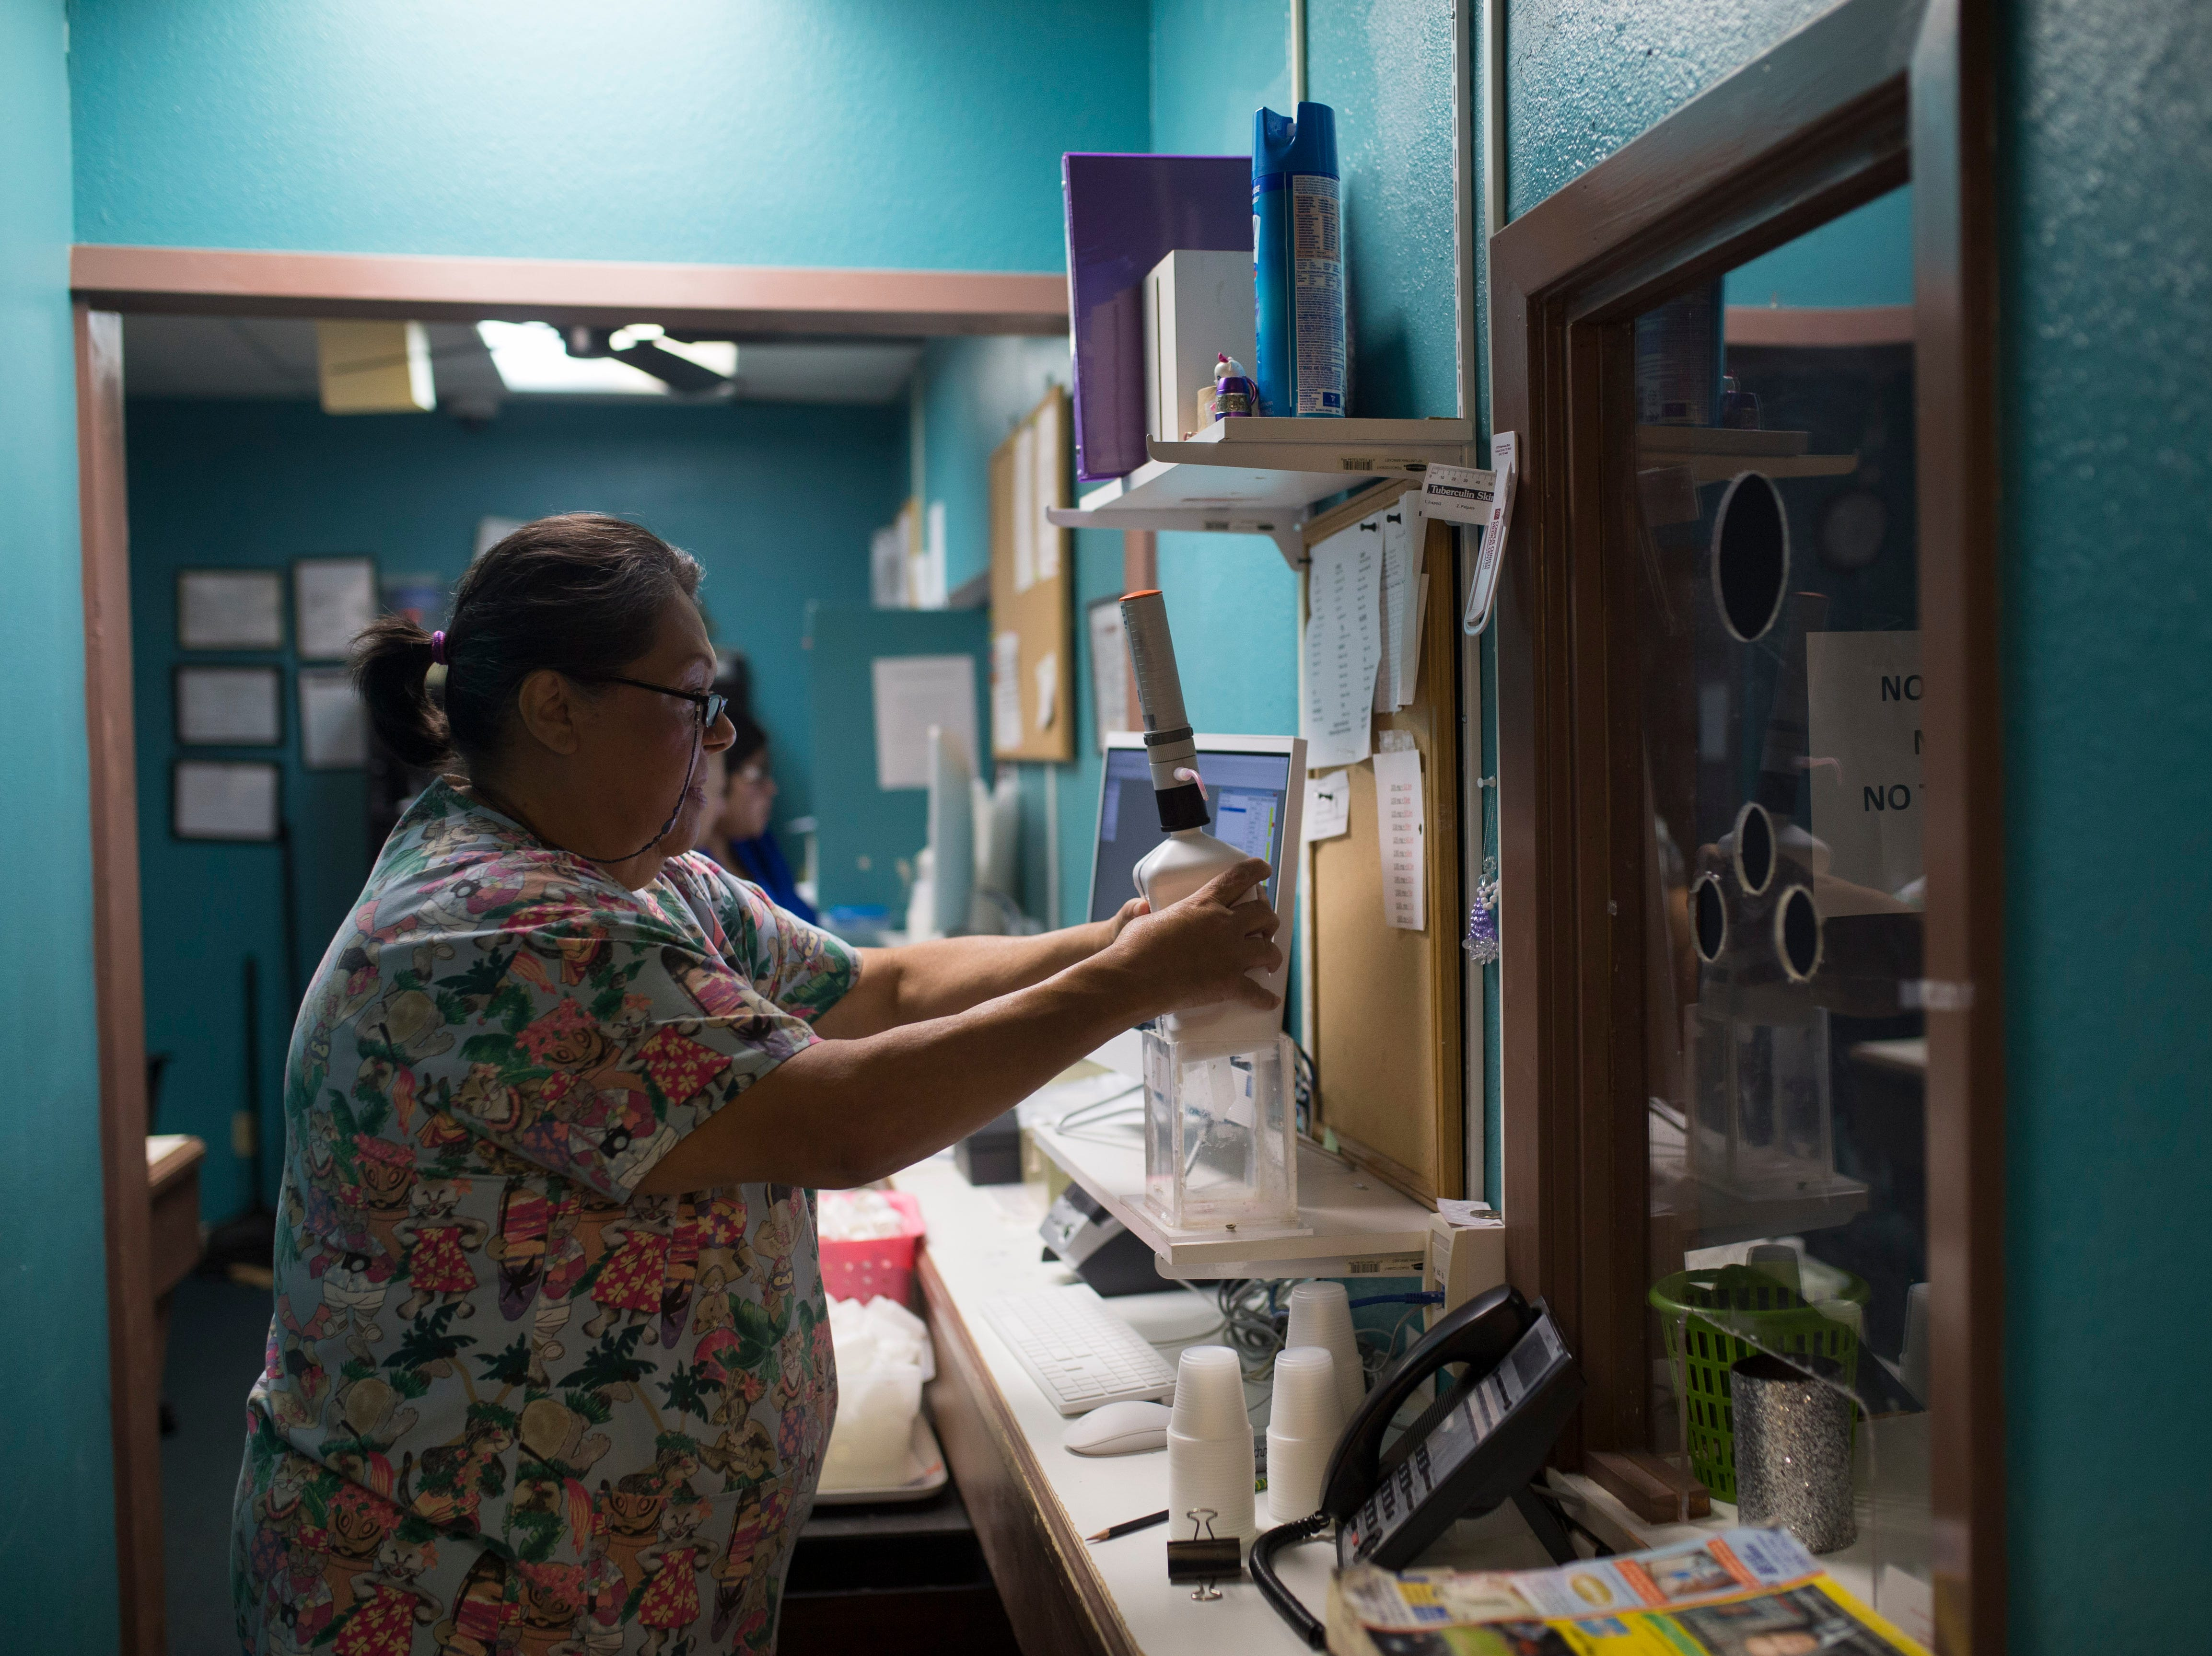 Methadone clinic workers prepare for their shift early in the morning at the S.T.A.R.S. clinic in Corpus Christi.